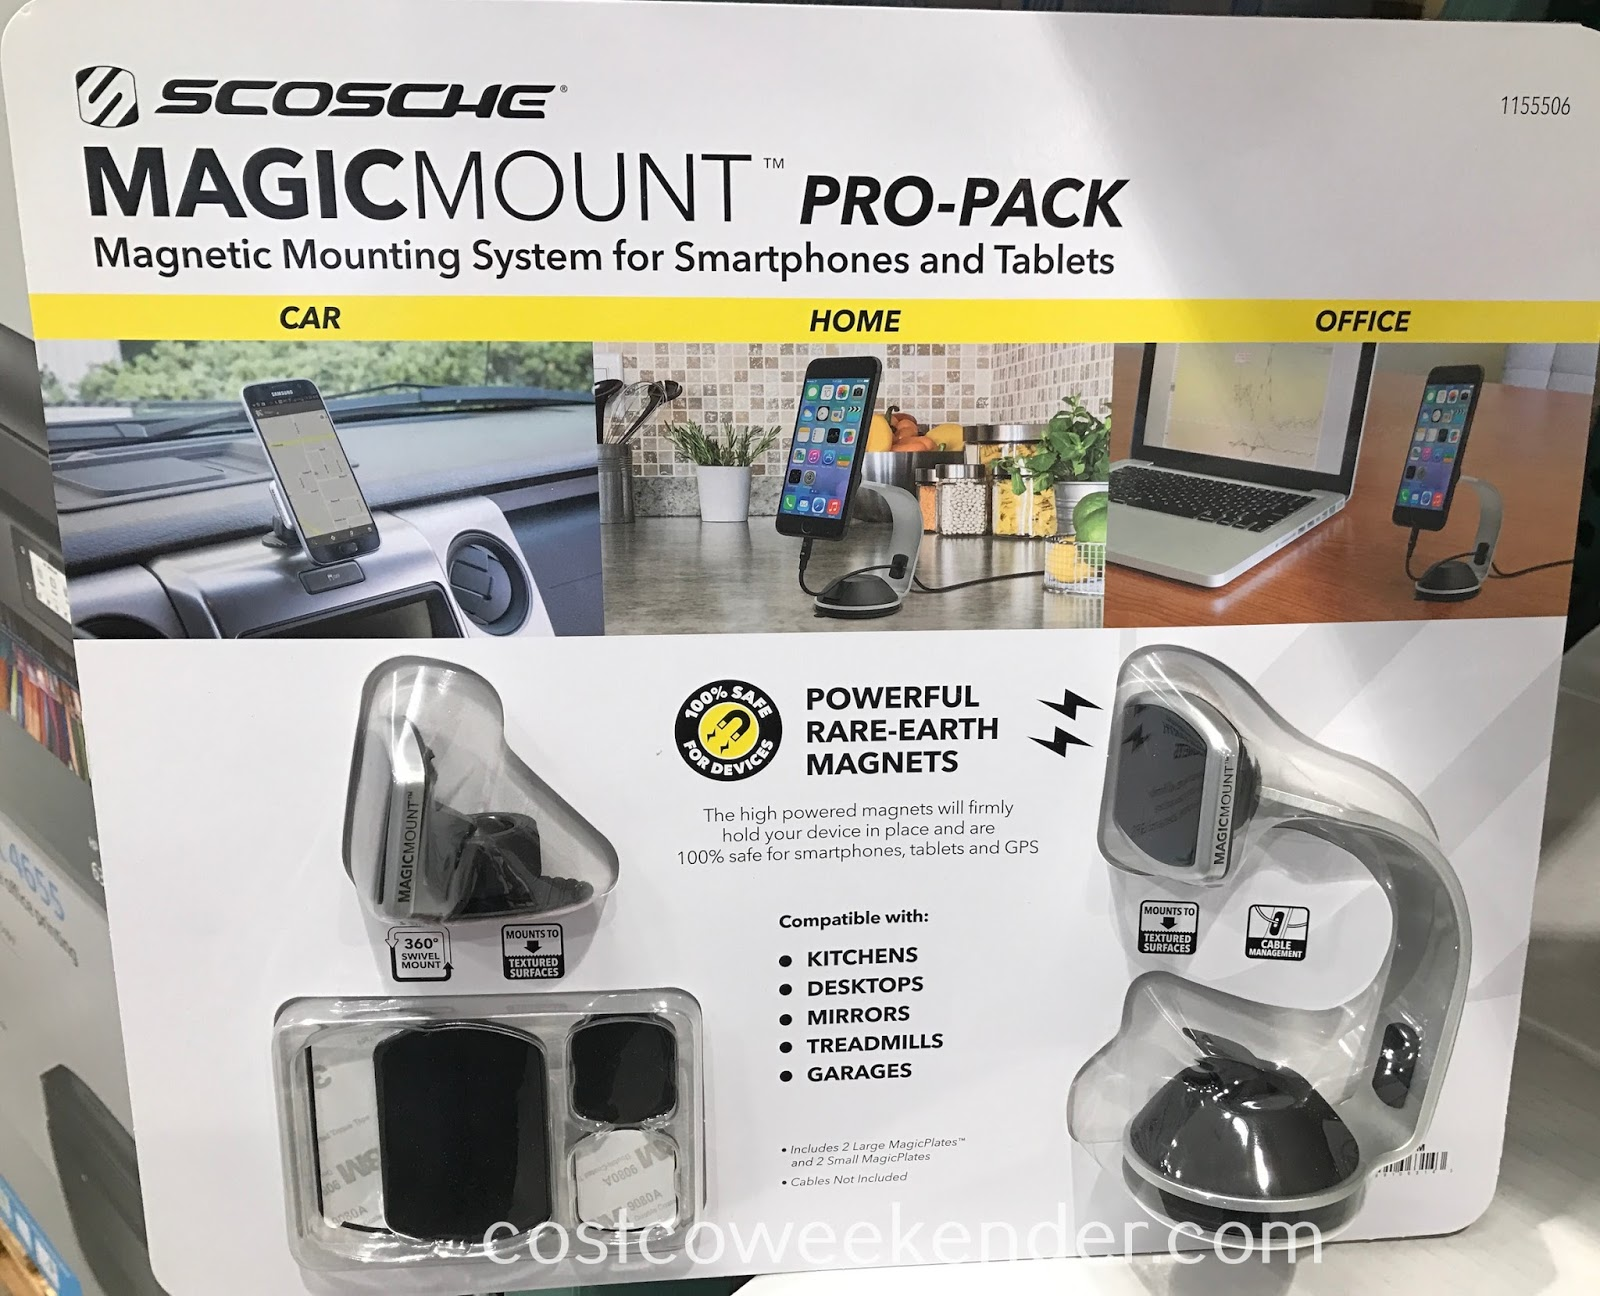 Conveniently charge your mobile device with the Scosche Magic Mount Pro-Pack Magnetic Mounting System